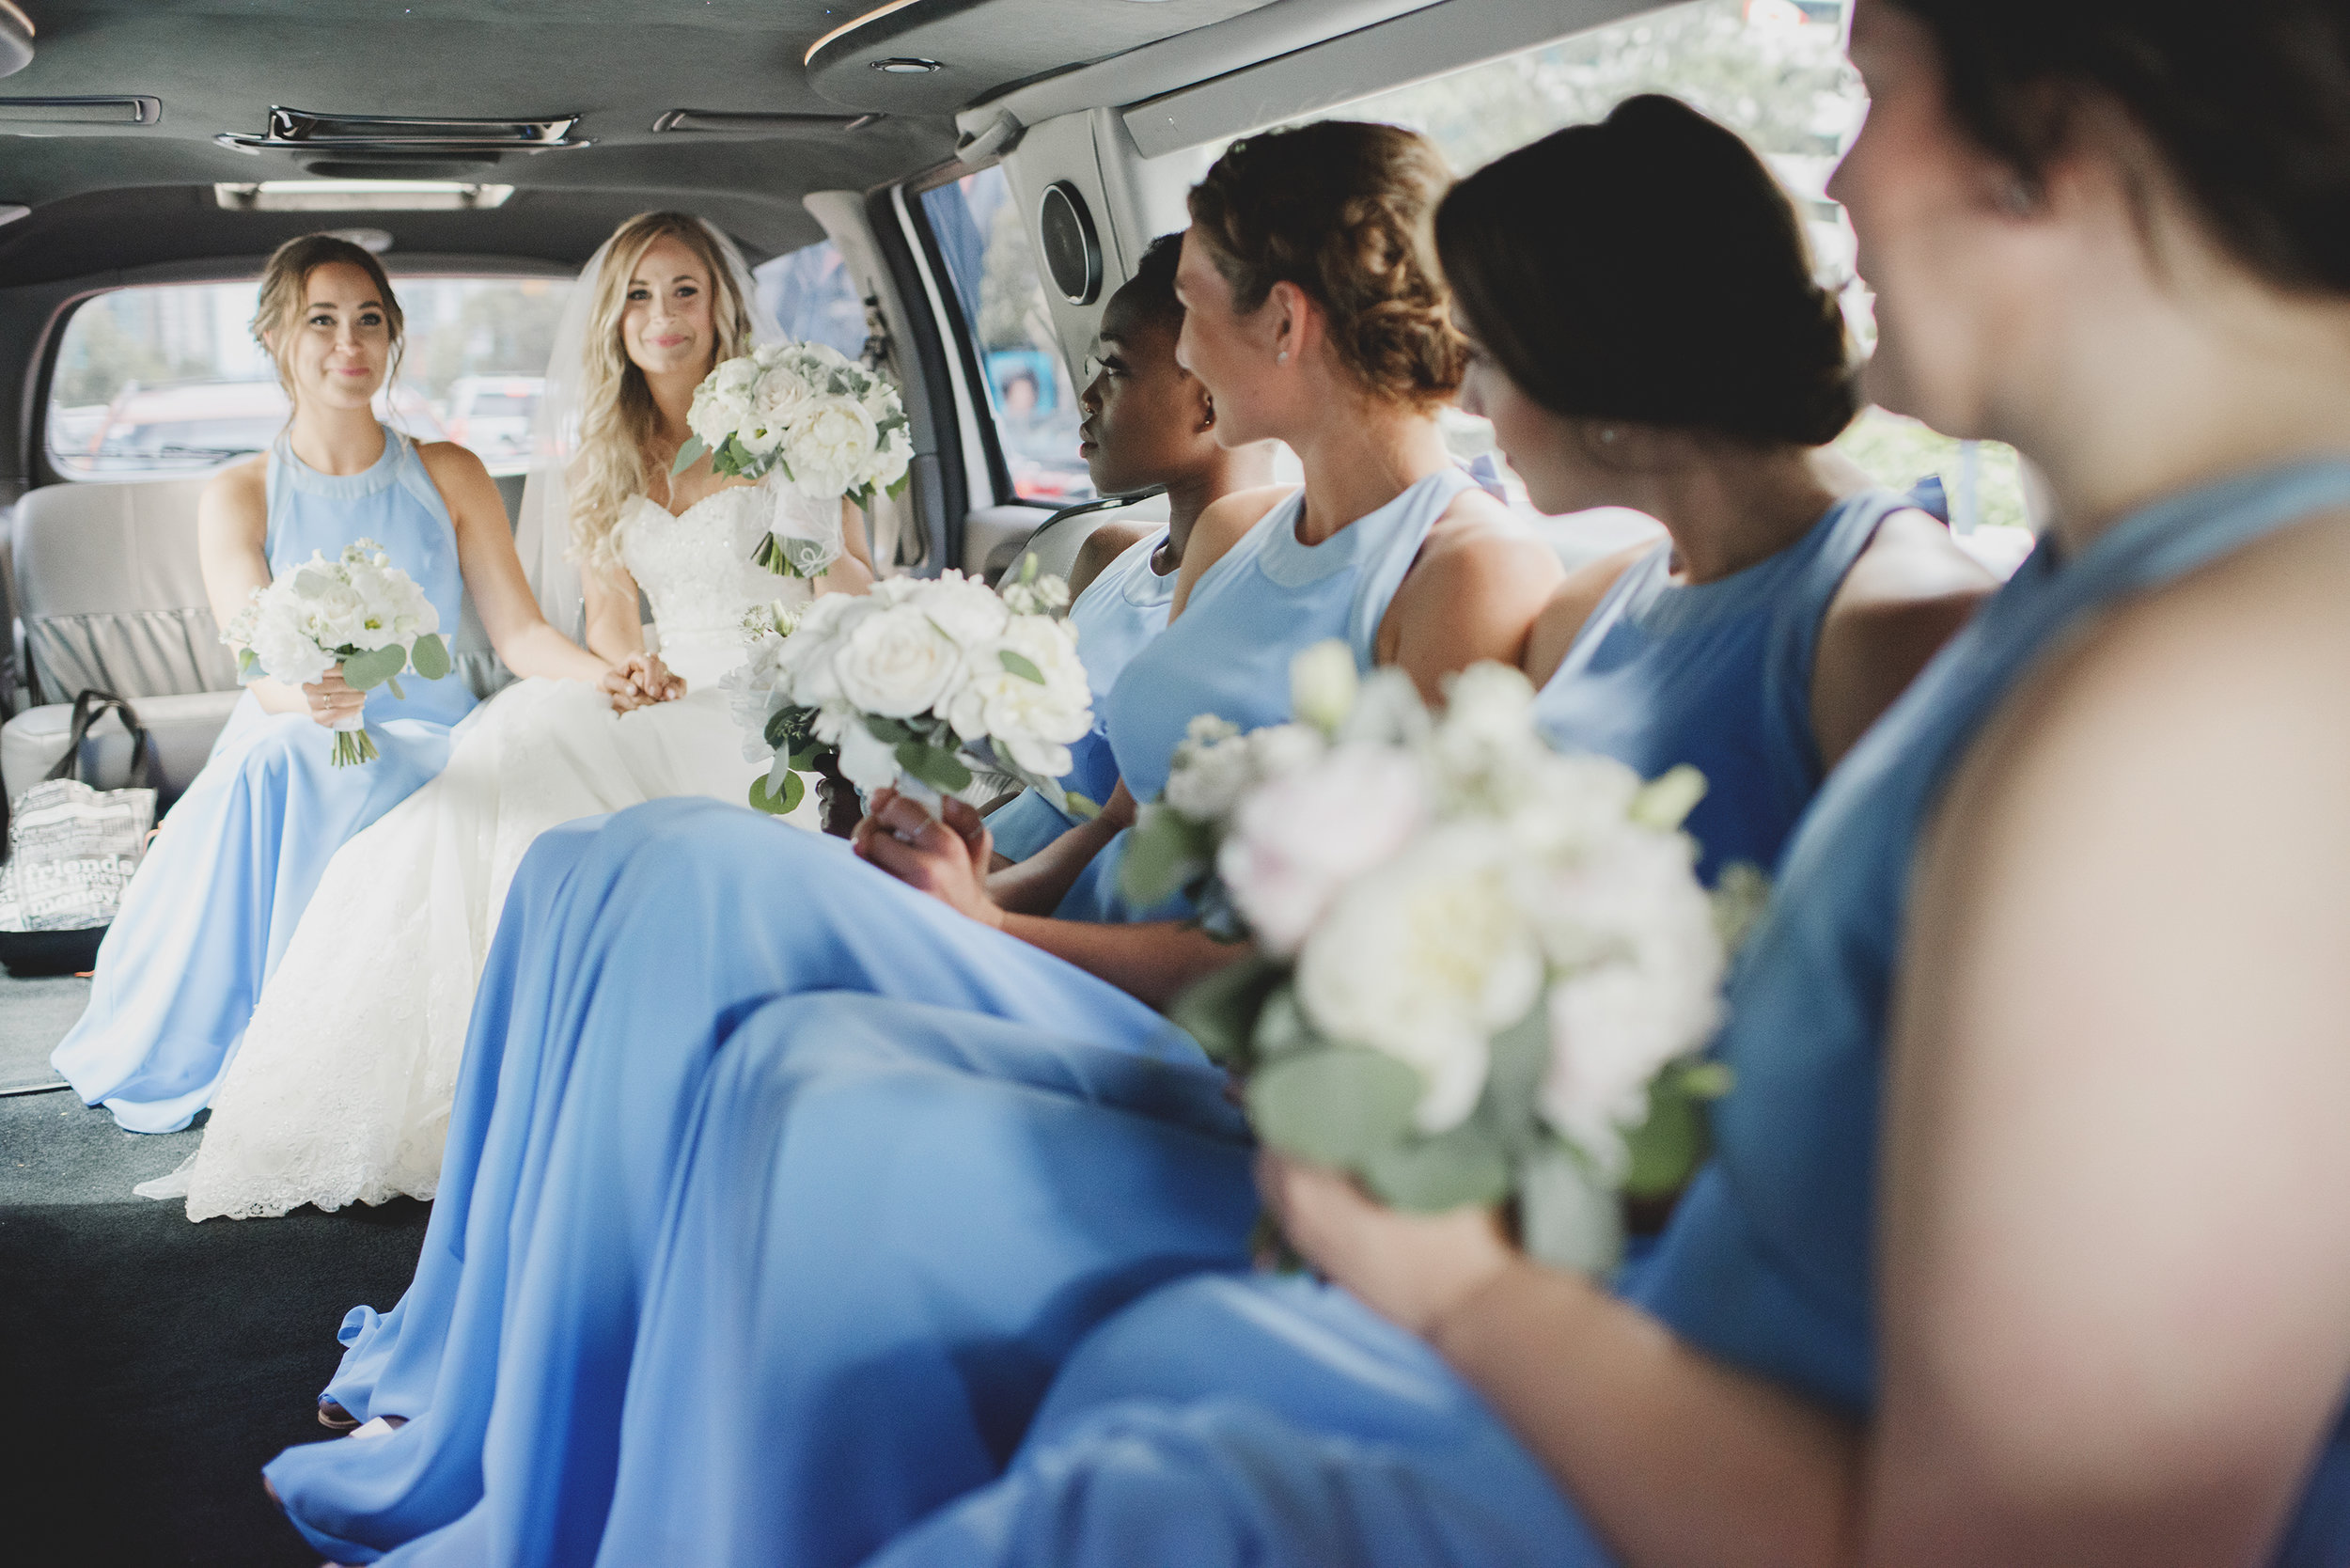 M&J_Mariah & Bridesmaids-363.jpg